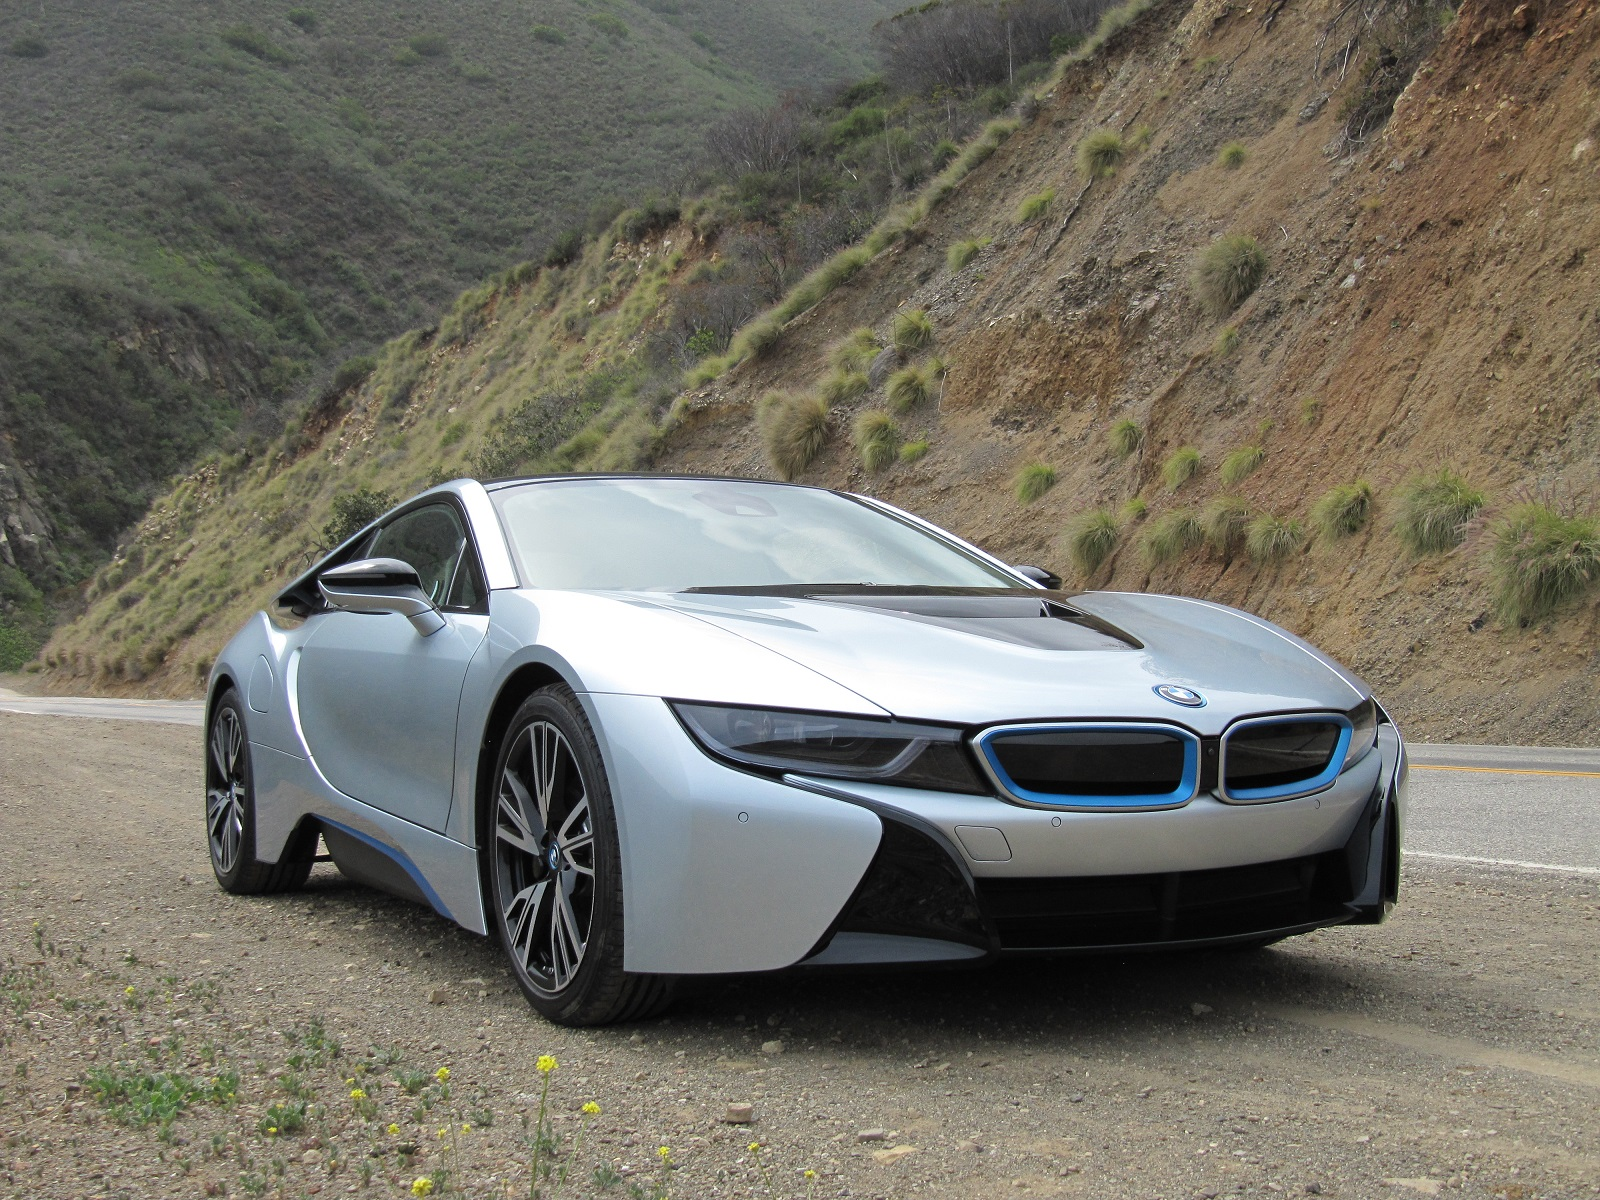 Bmw I8 Plug In Hybrid Sports Car Full Pricing And Options Announced